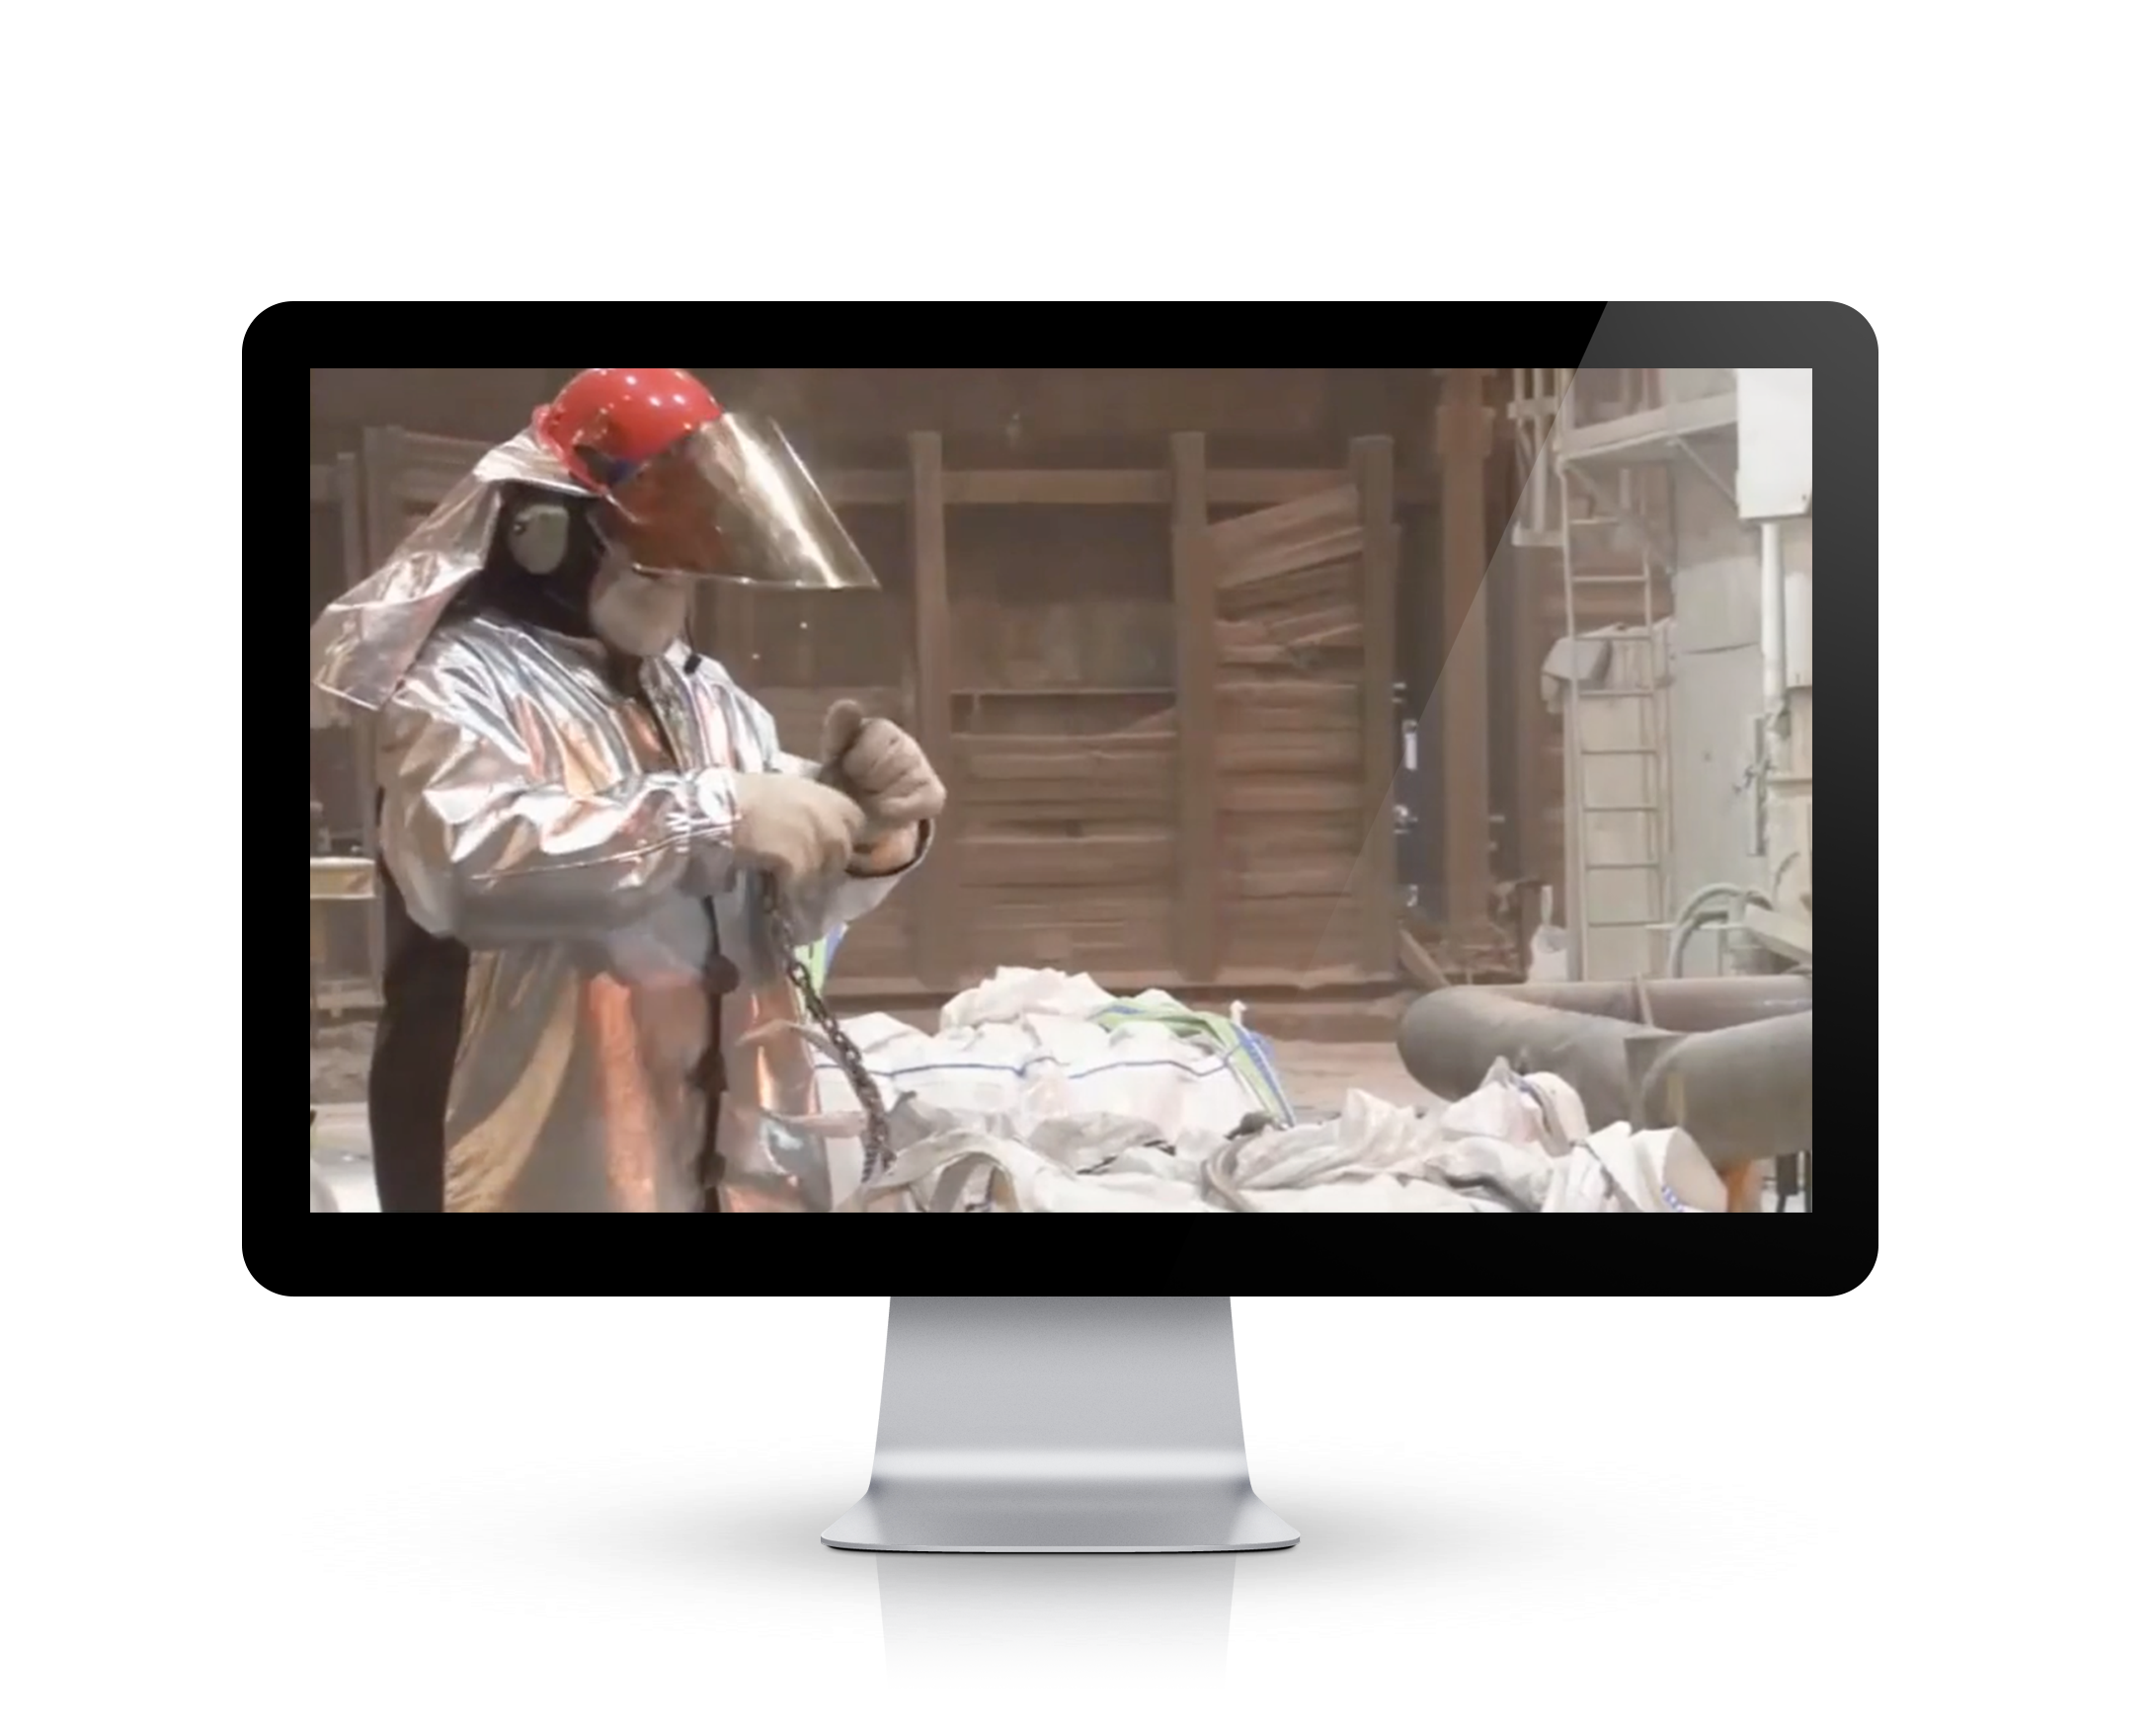 PPE Hearing Conservation Pipe and Wire training video image overlaid onto a Video Base